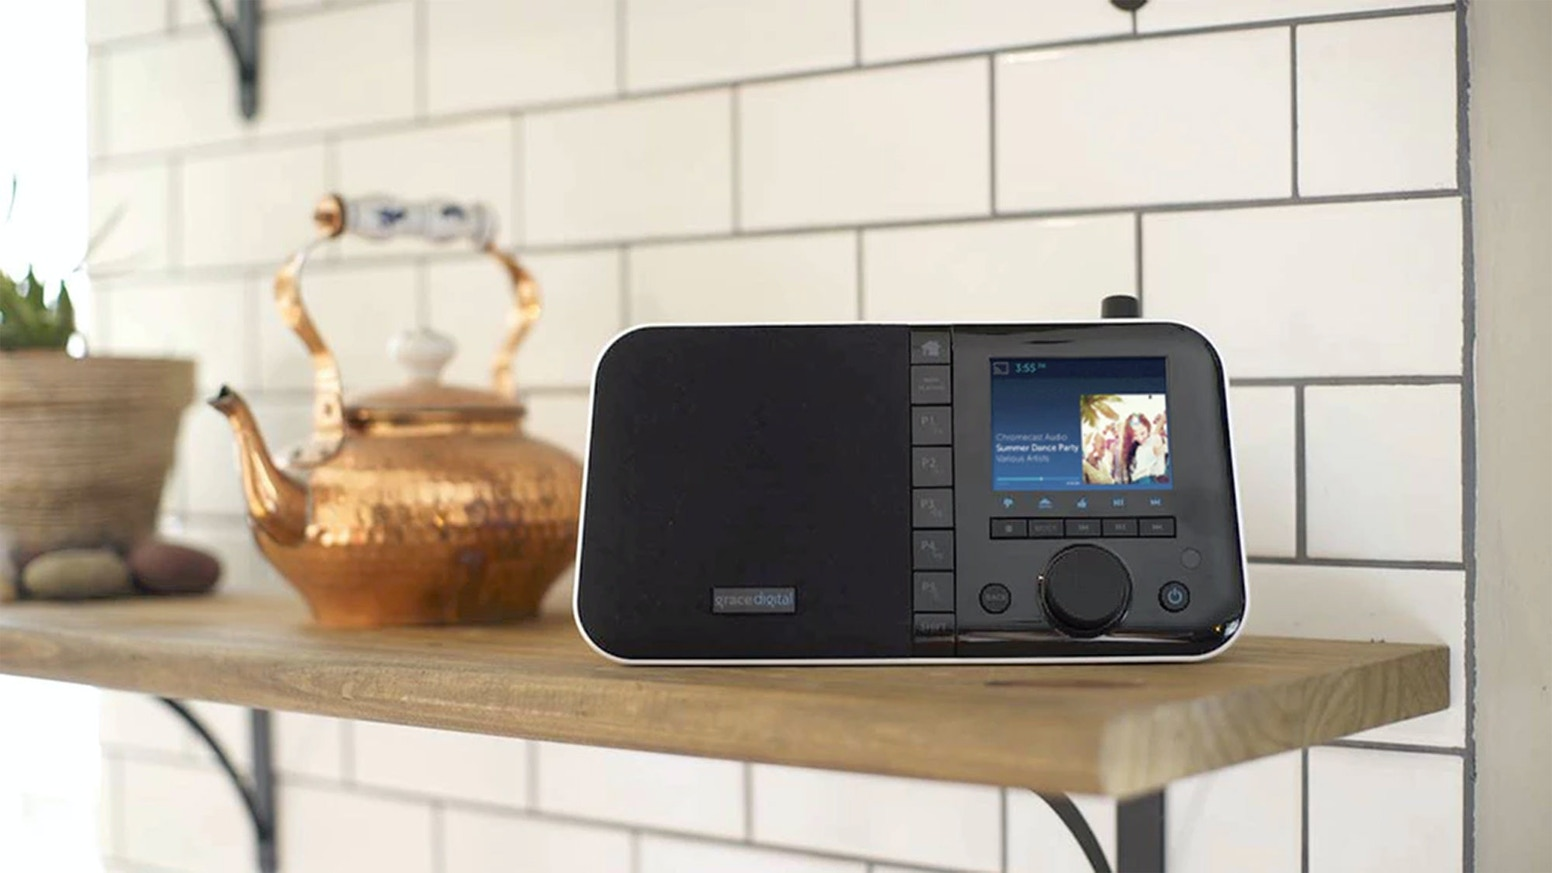 The world's first internet radio with Chromecast built-in.